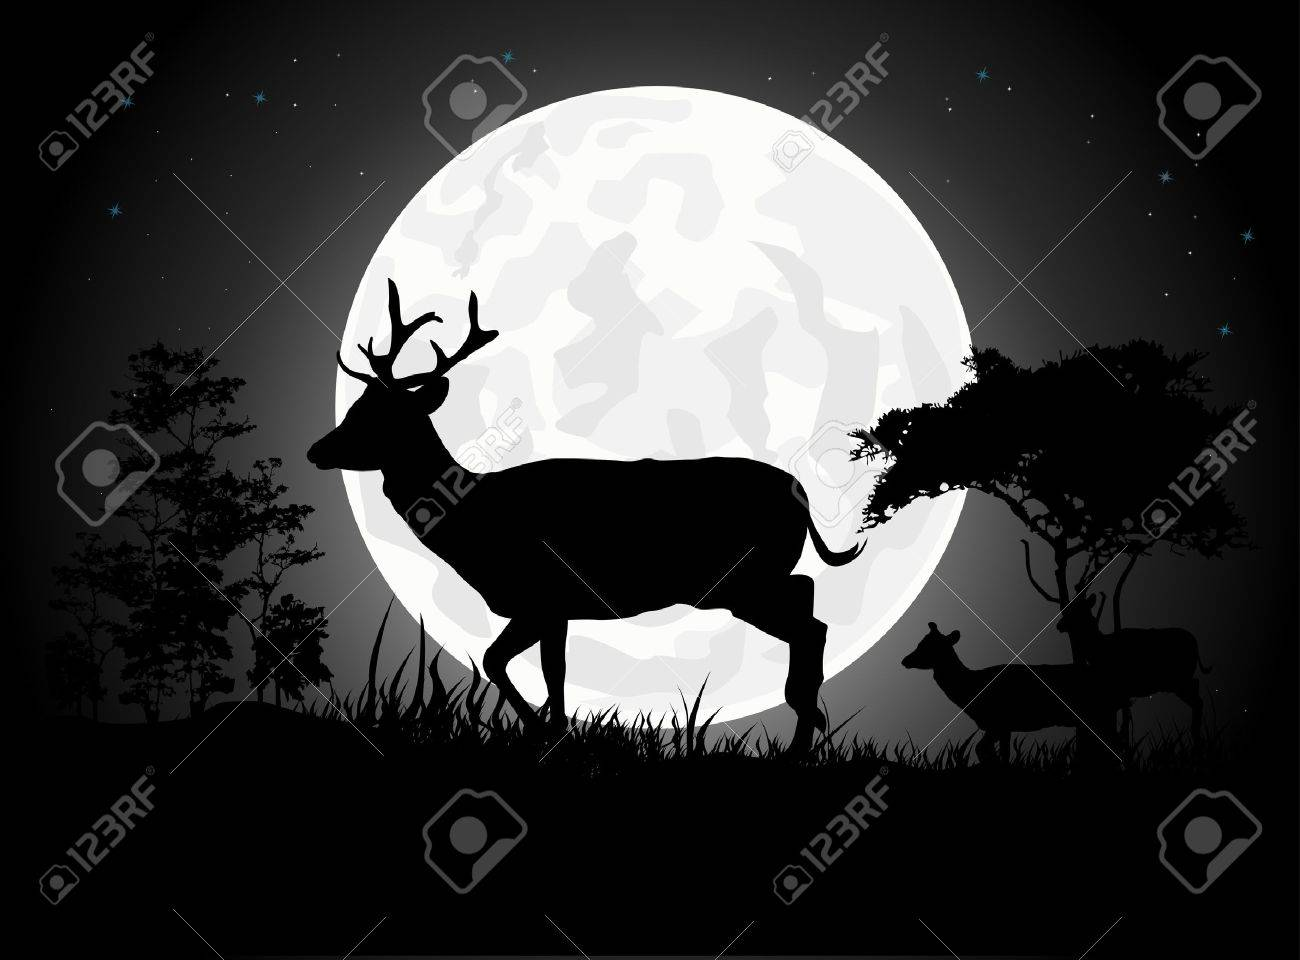 Beautiful Deer silhouettes with giant moon background Stock Vector - 15359902